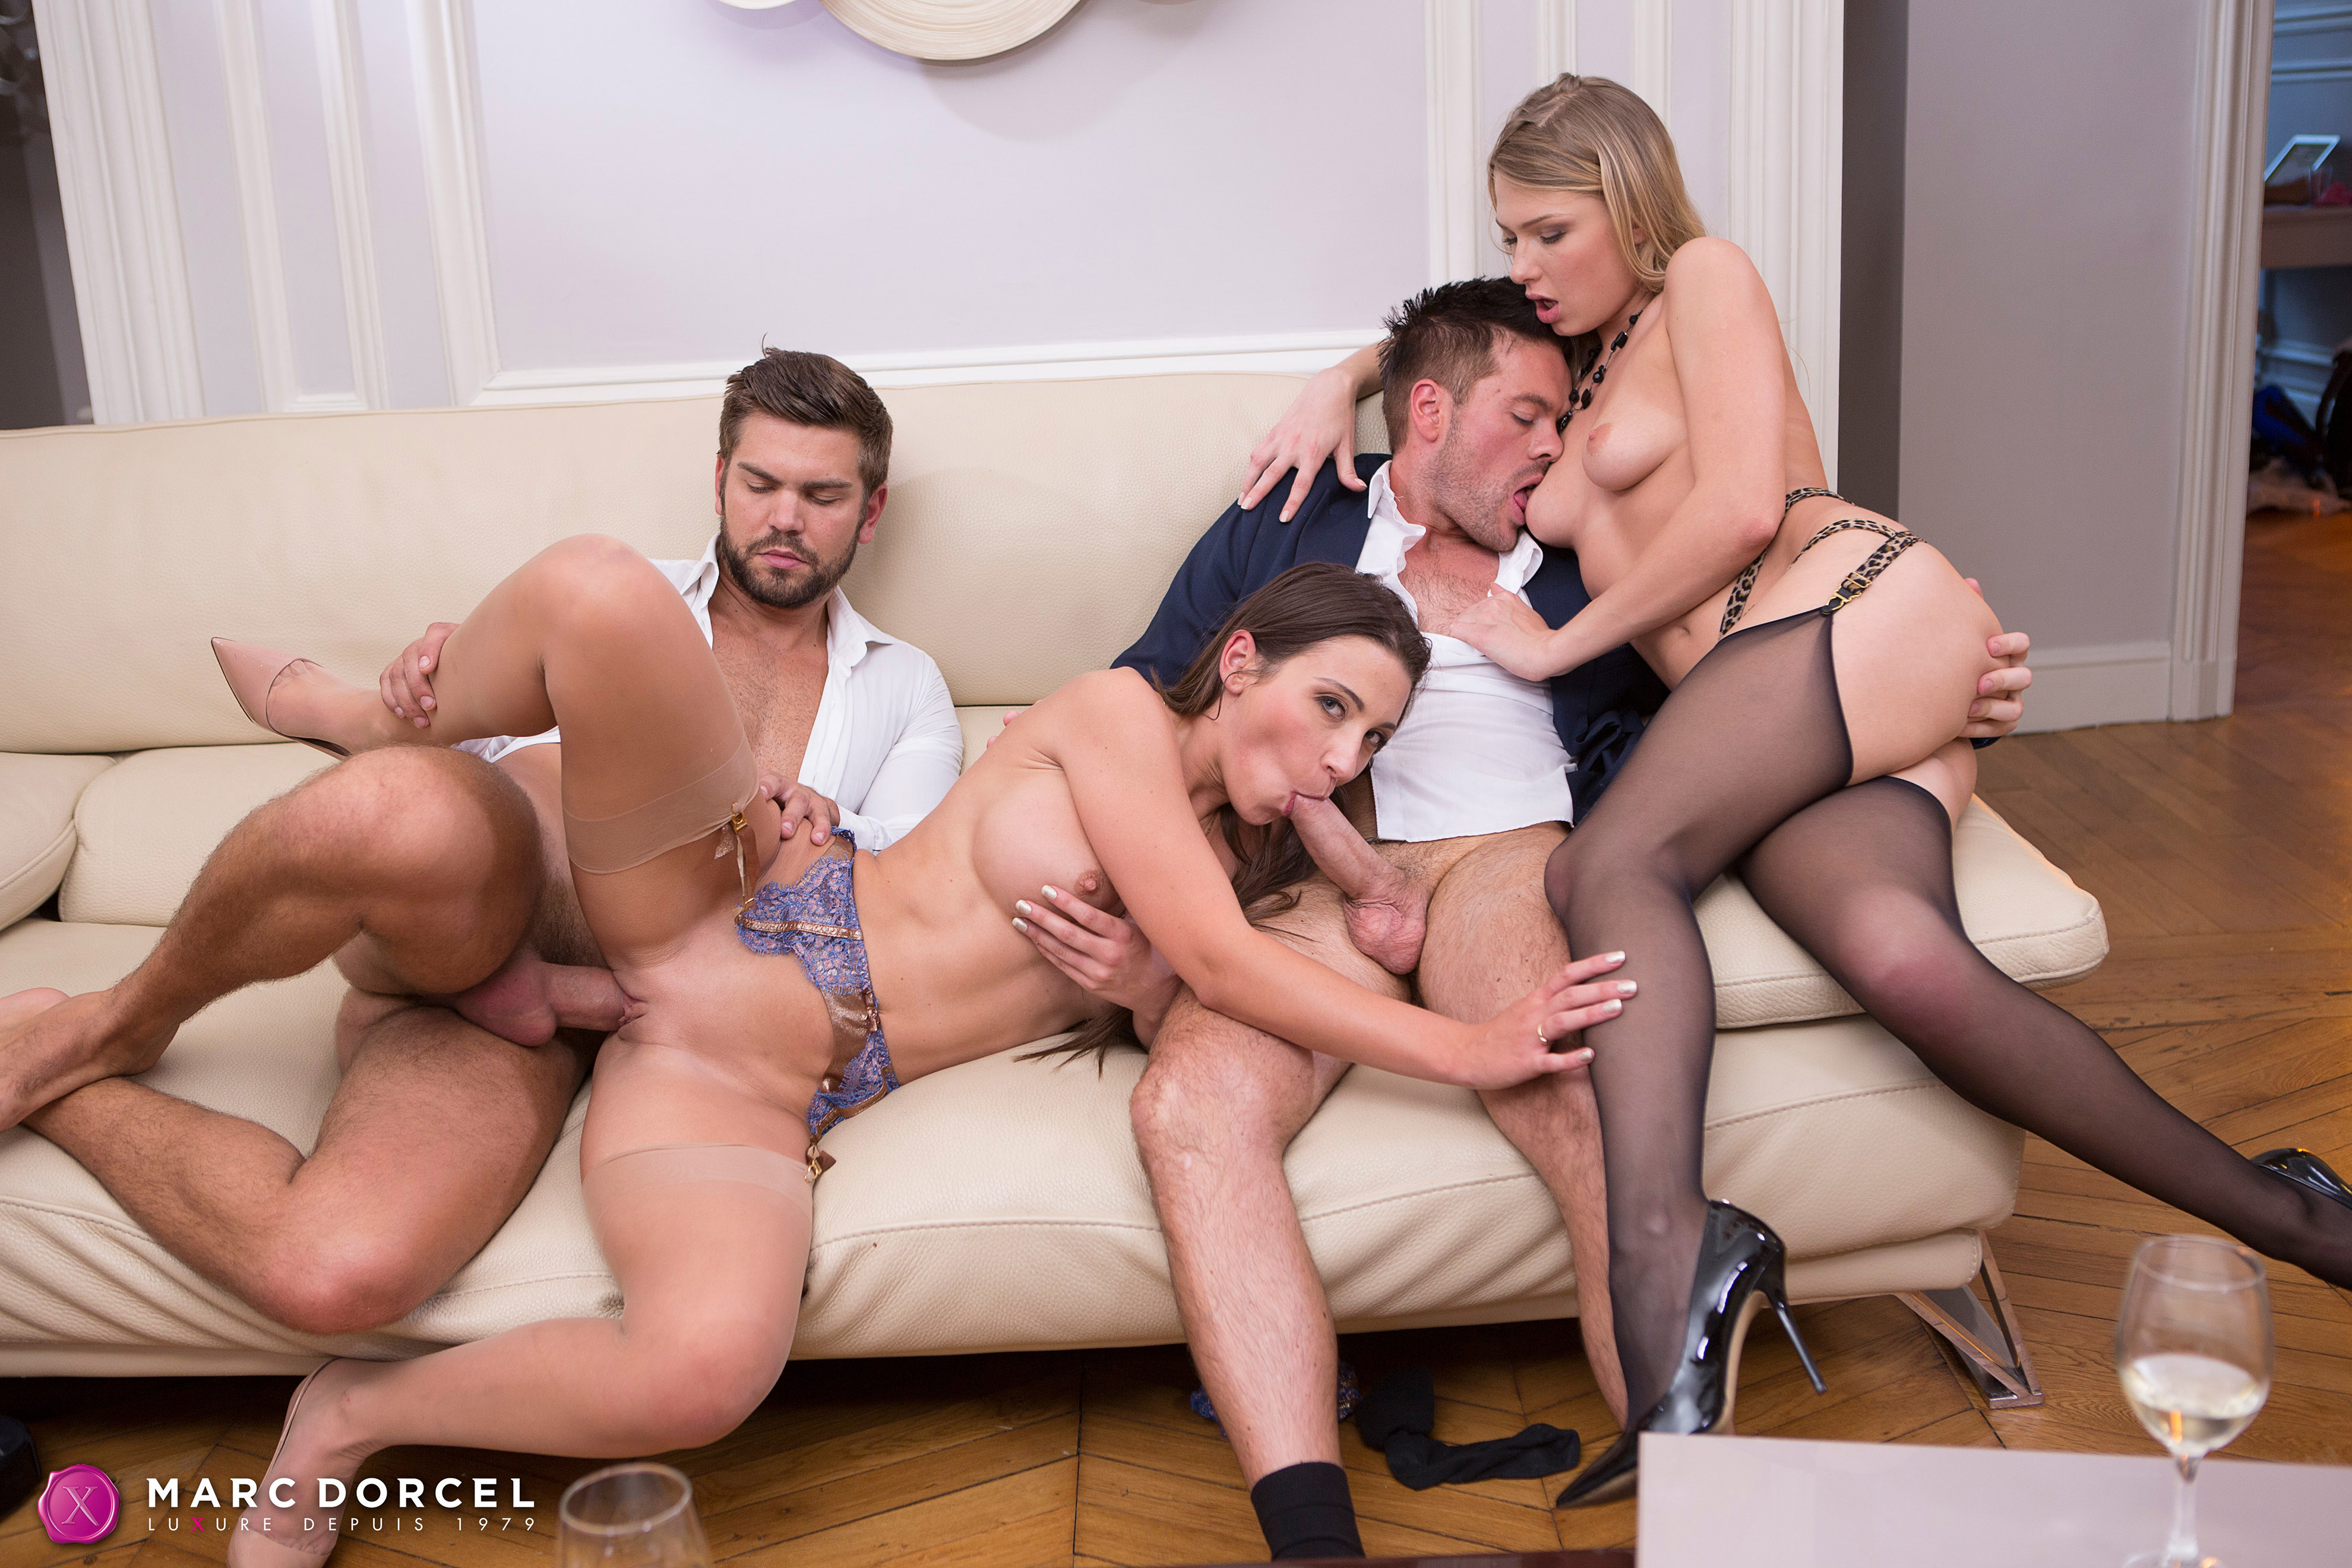 Sara Bell And Friends Orgy Hardsex Asshole Gapes Creampies Porn Photo